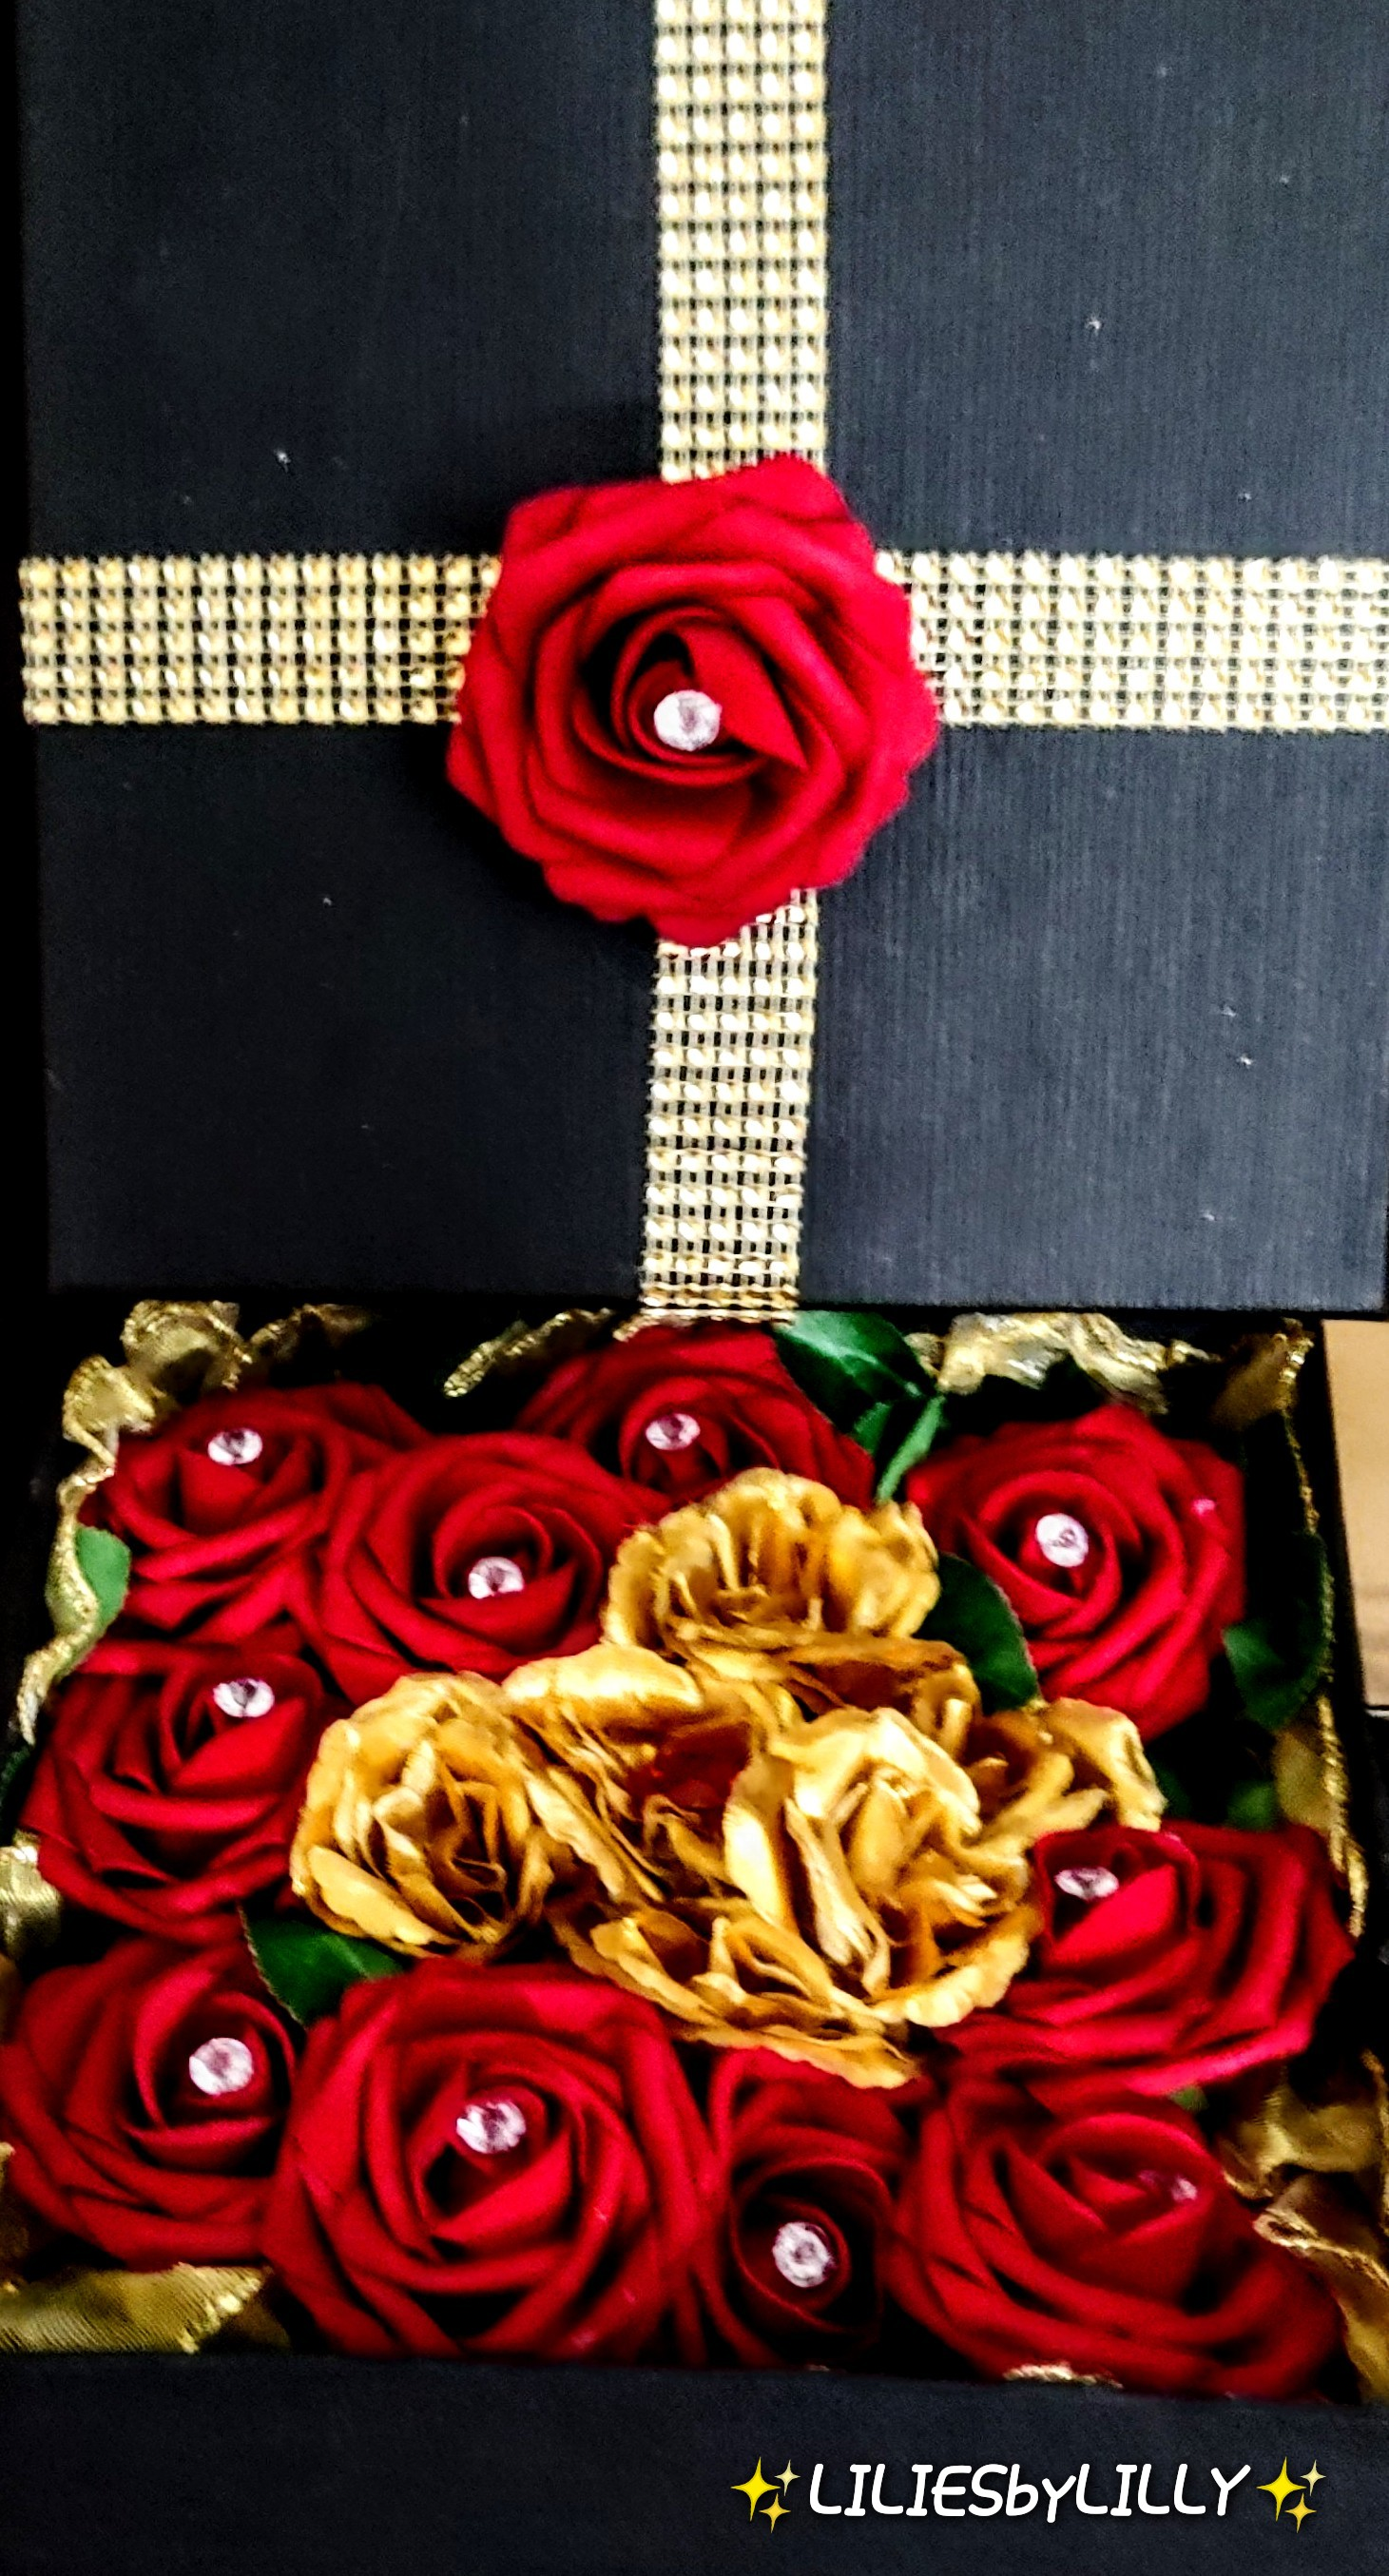 RED ROSE DIAMOND BOX